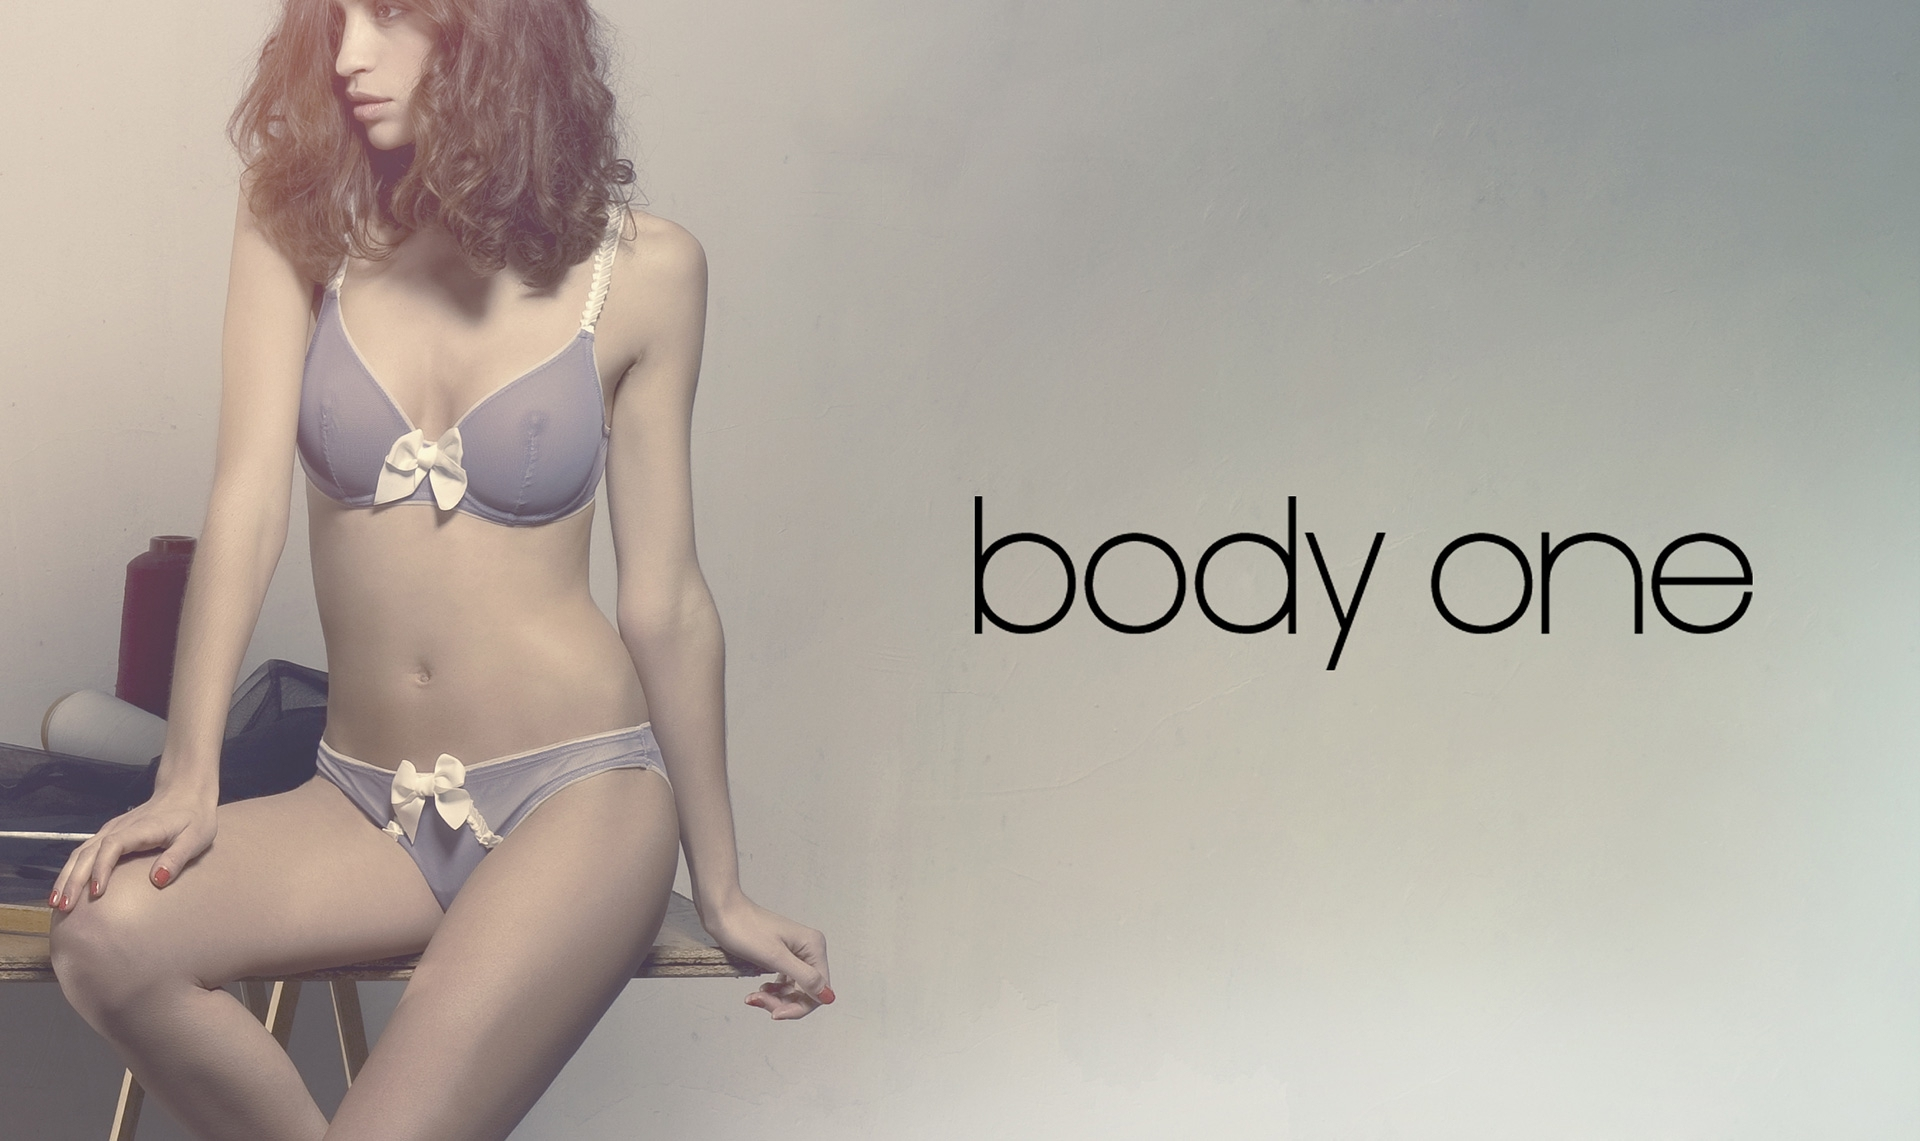 body one campaign 2009 2010 lingerie underwear frederic mercier fashion photographer one color